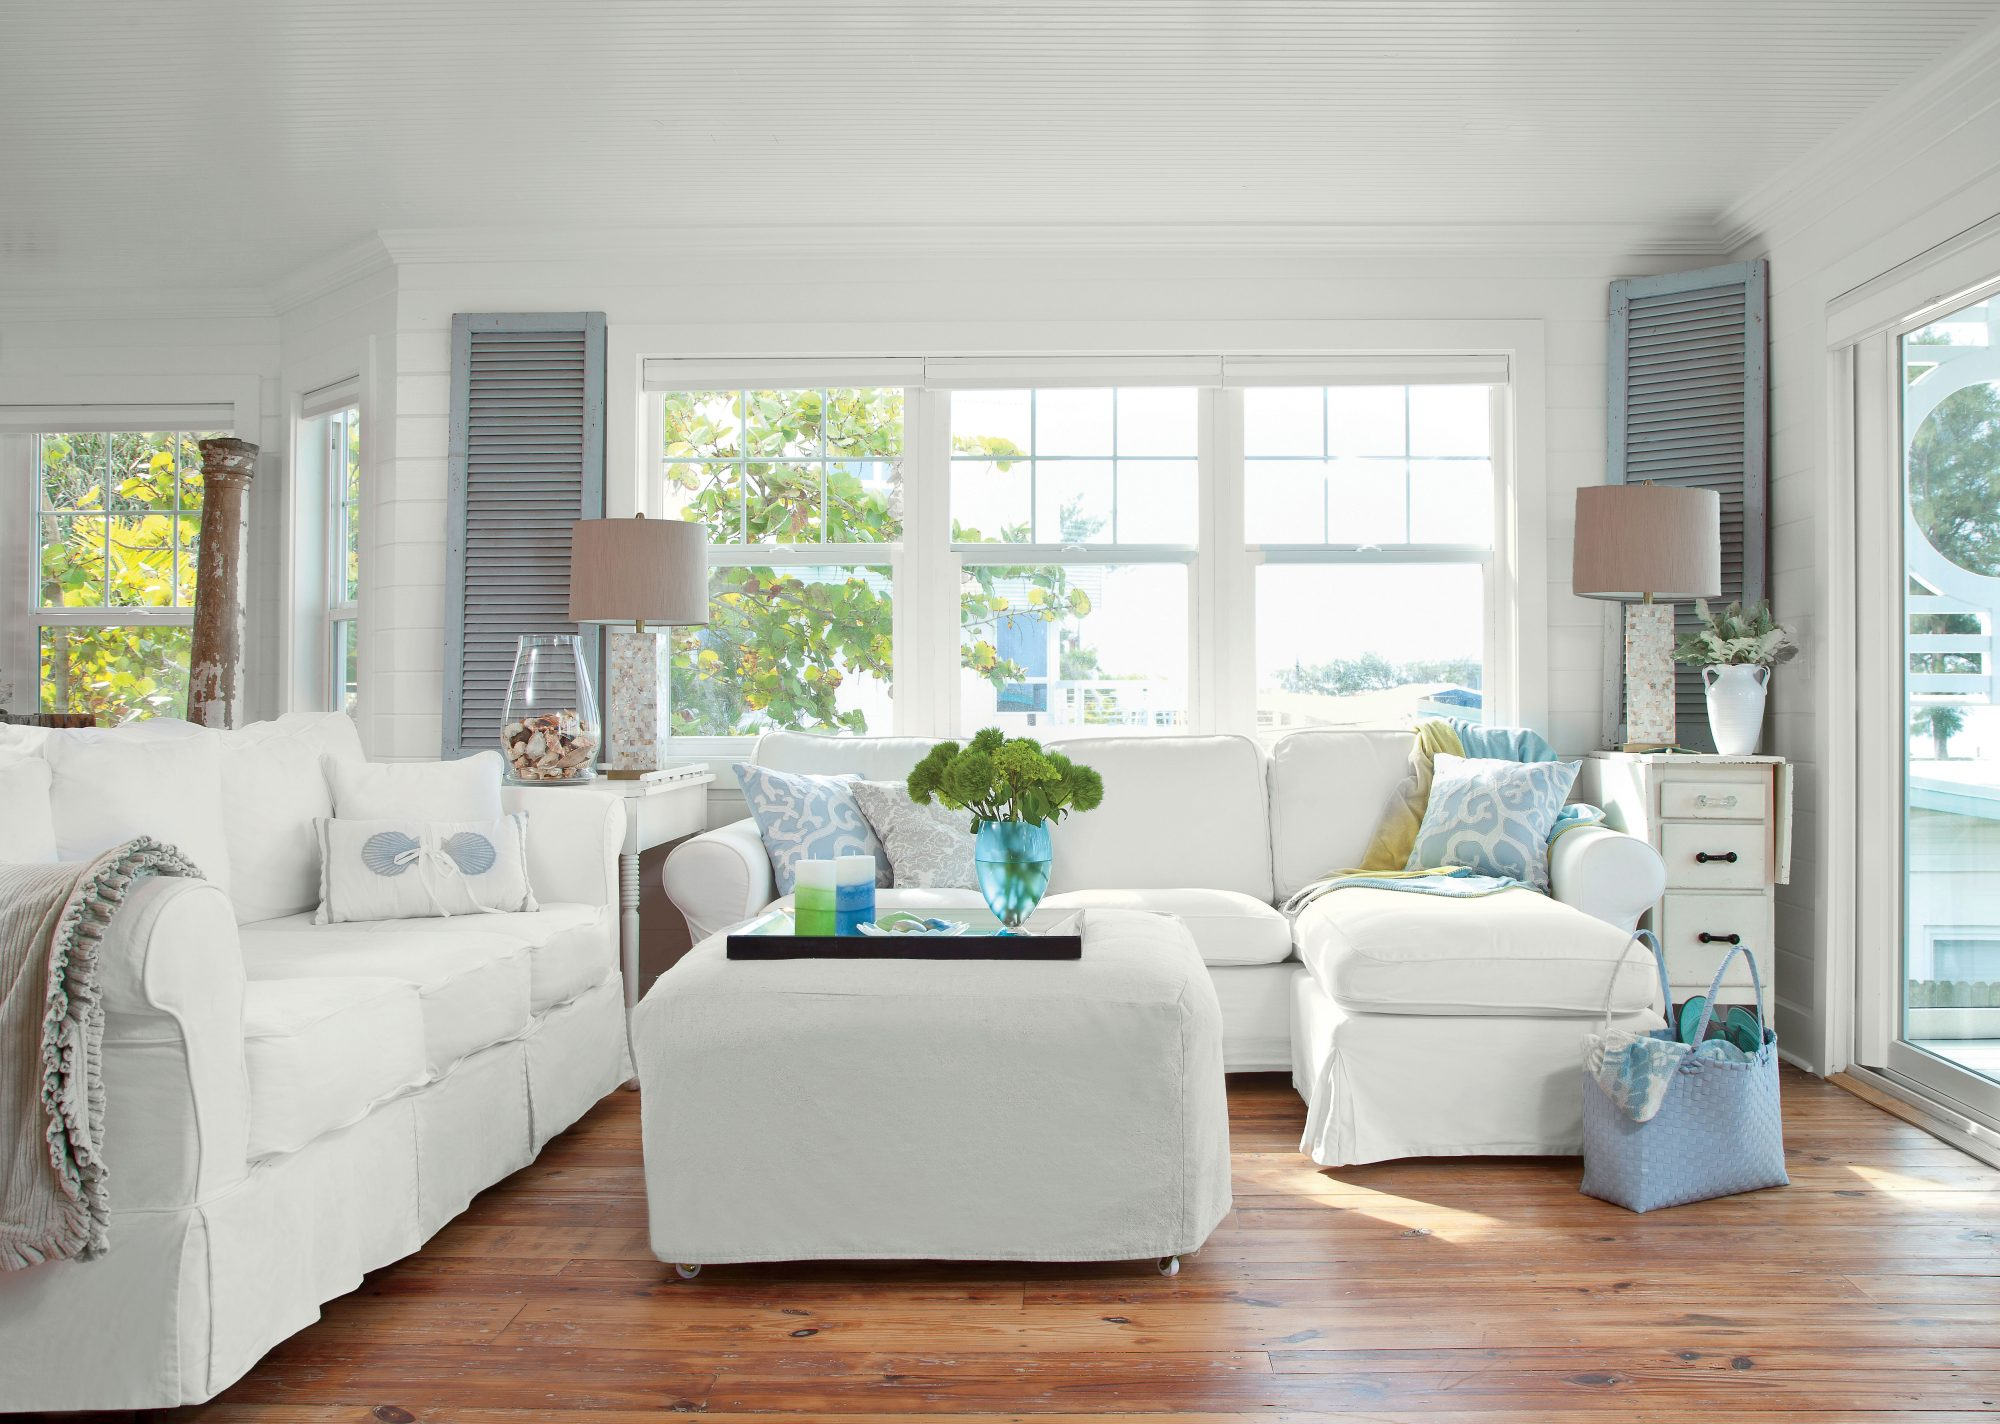 Many island homes feature exterior shutters that can be opened to take advantage of tropical breezes, or closed during rough winds, but this living room puts a fresh twist on the classic element by incorprating a painted shutter into the décor.